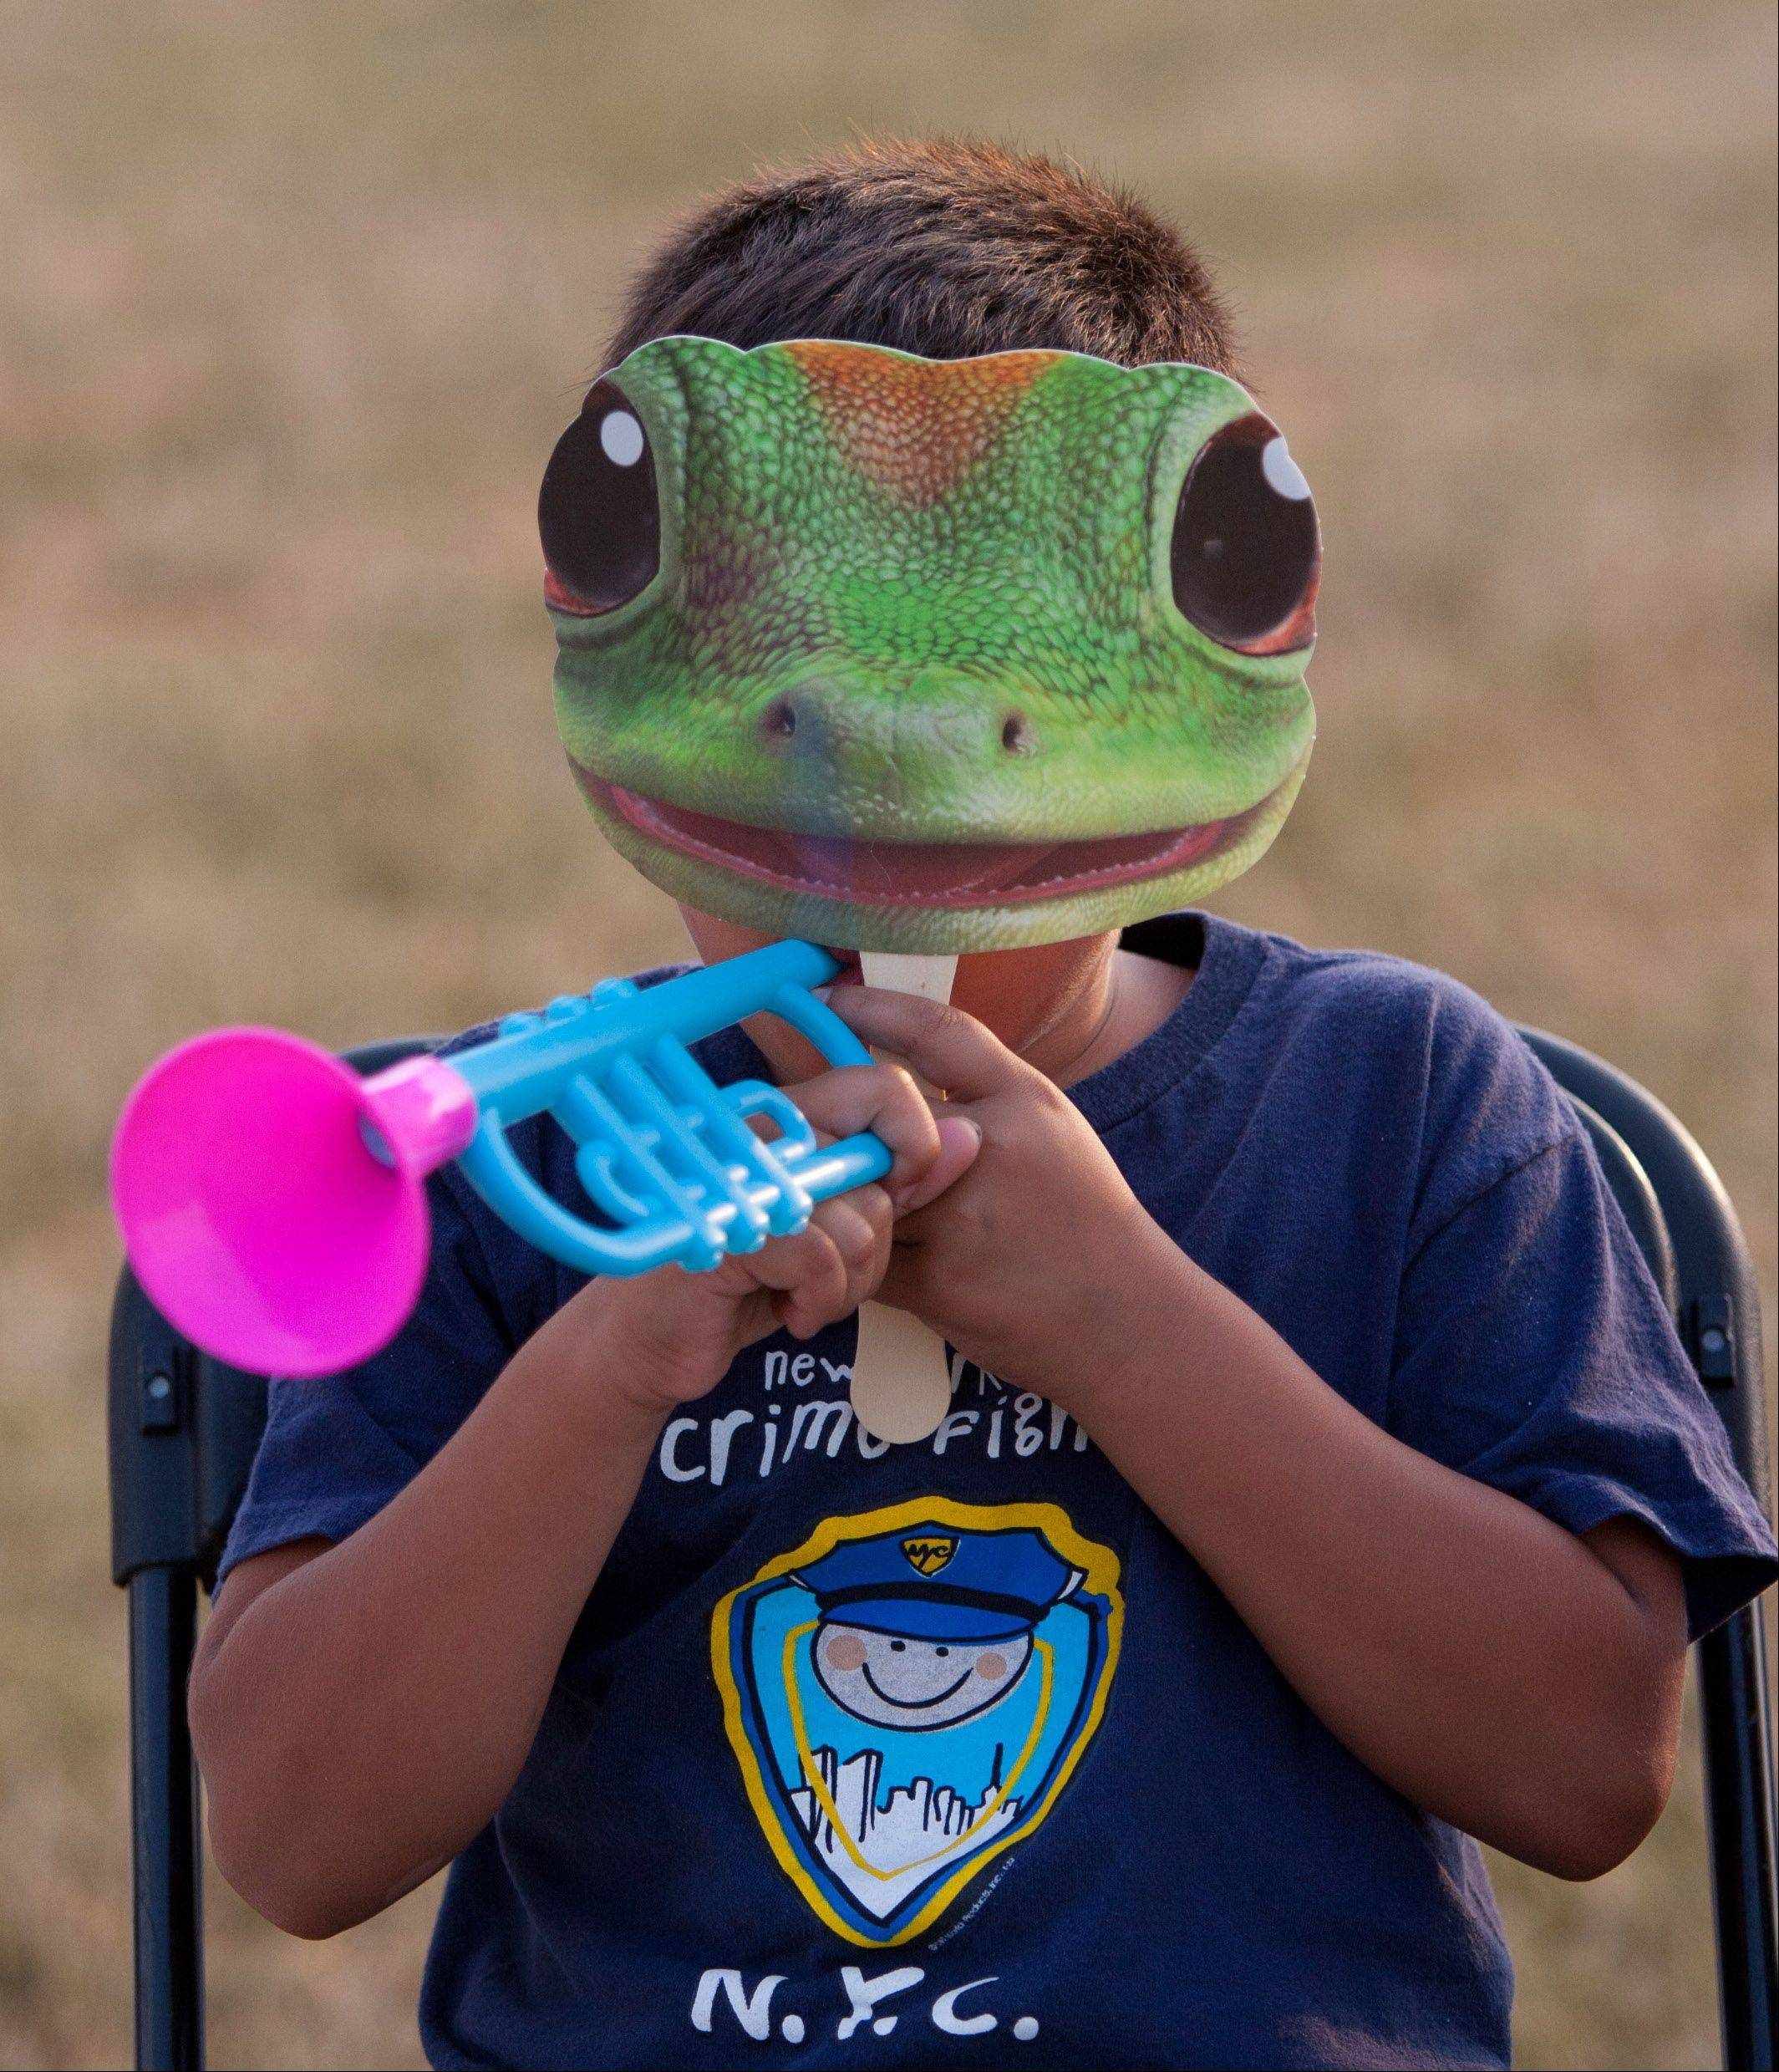 Julio Moreno, 5, of West Chicago waits to hear music as he relaxes behind the Geico Gecko trademark, during the second day of Railroad Days in West Chicago.